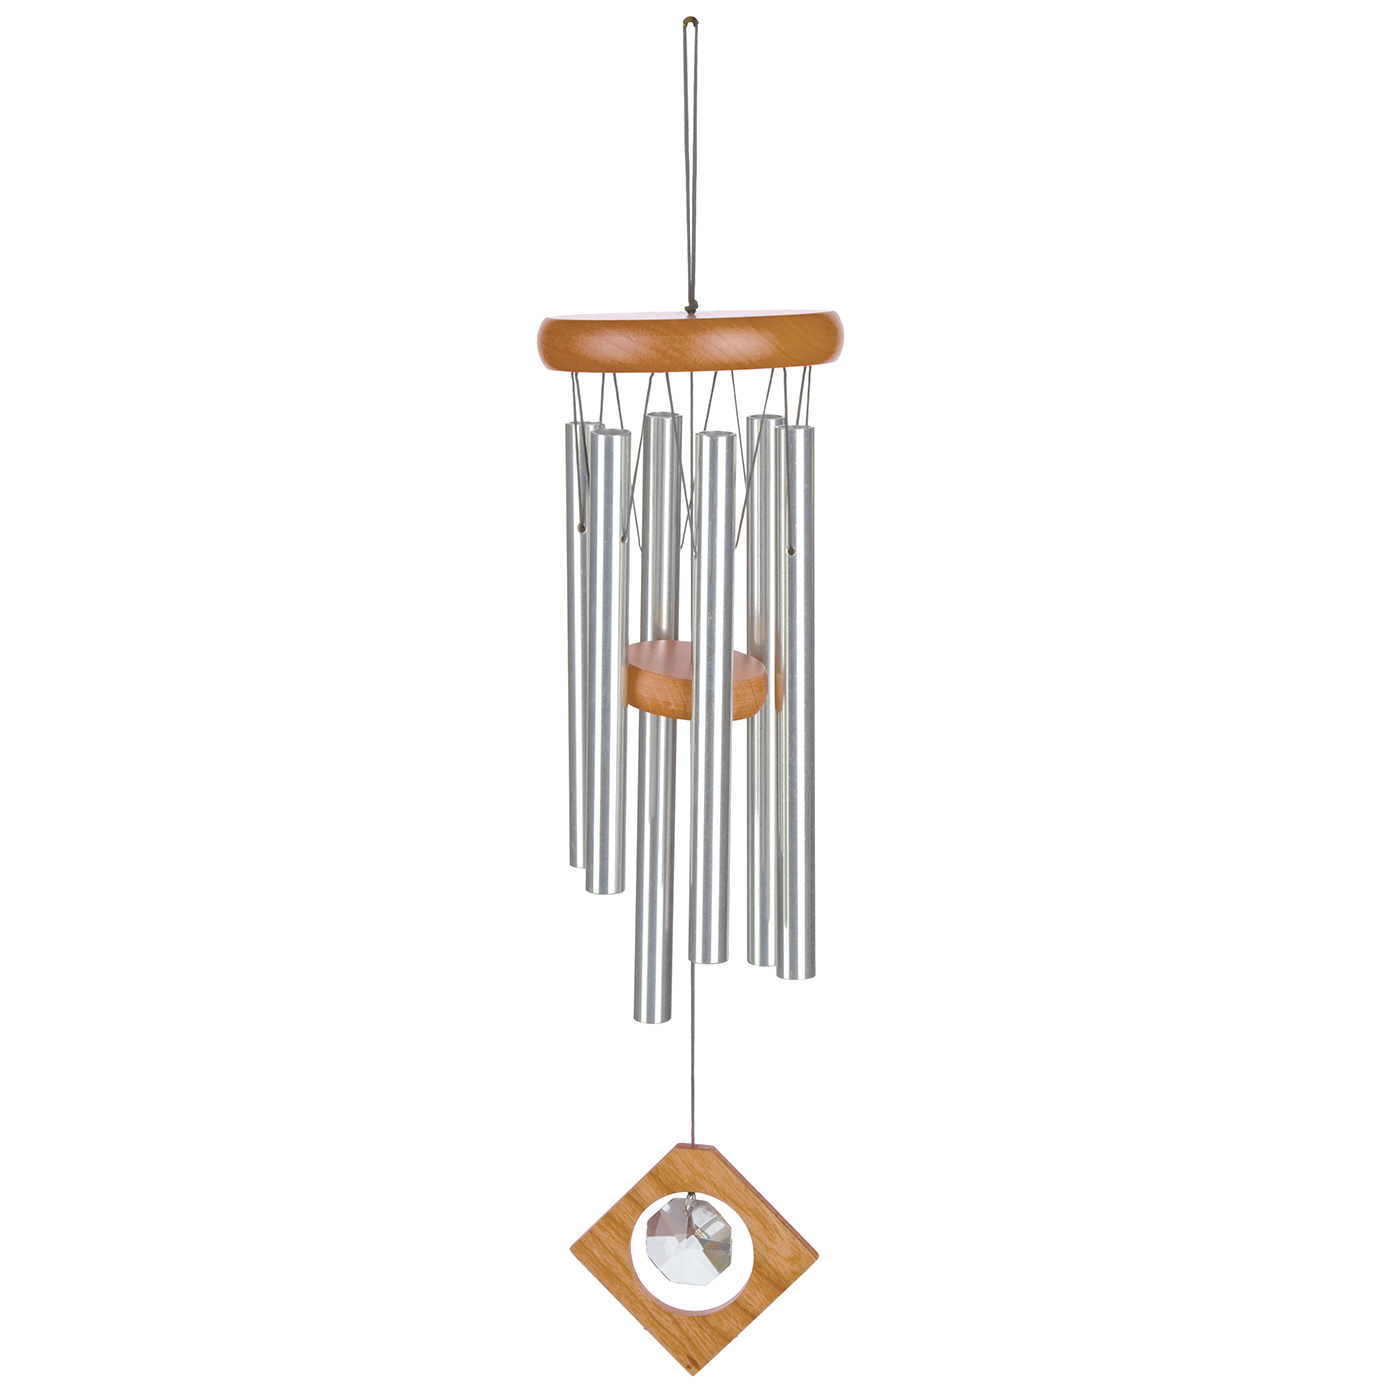 woodstock wind chimes feng shui chime eco paper at vickerey. Black Bedroom Furniture Sets. Home Design Ideas